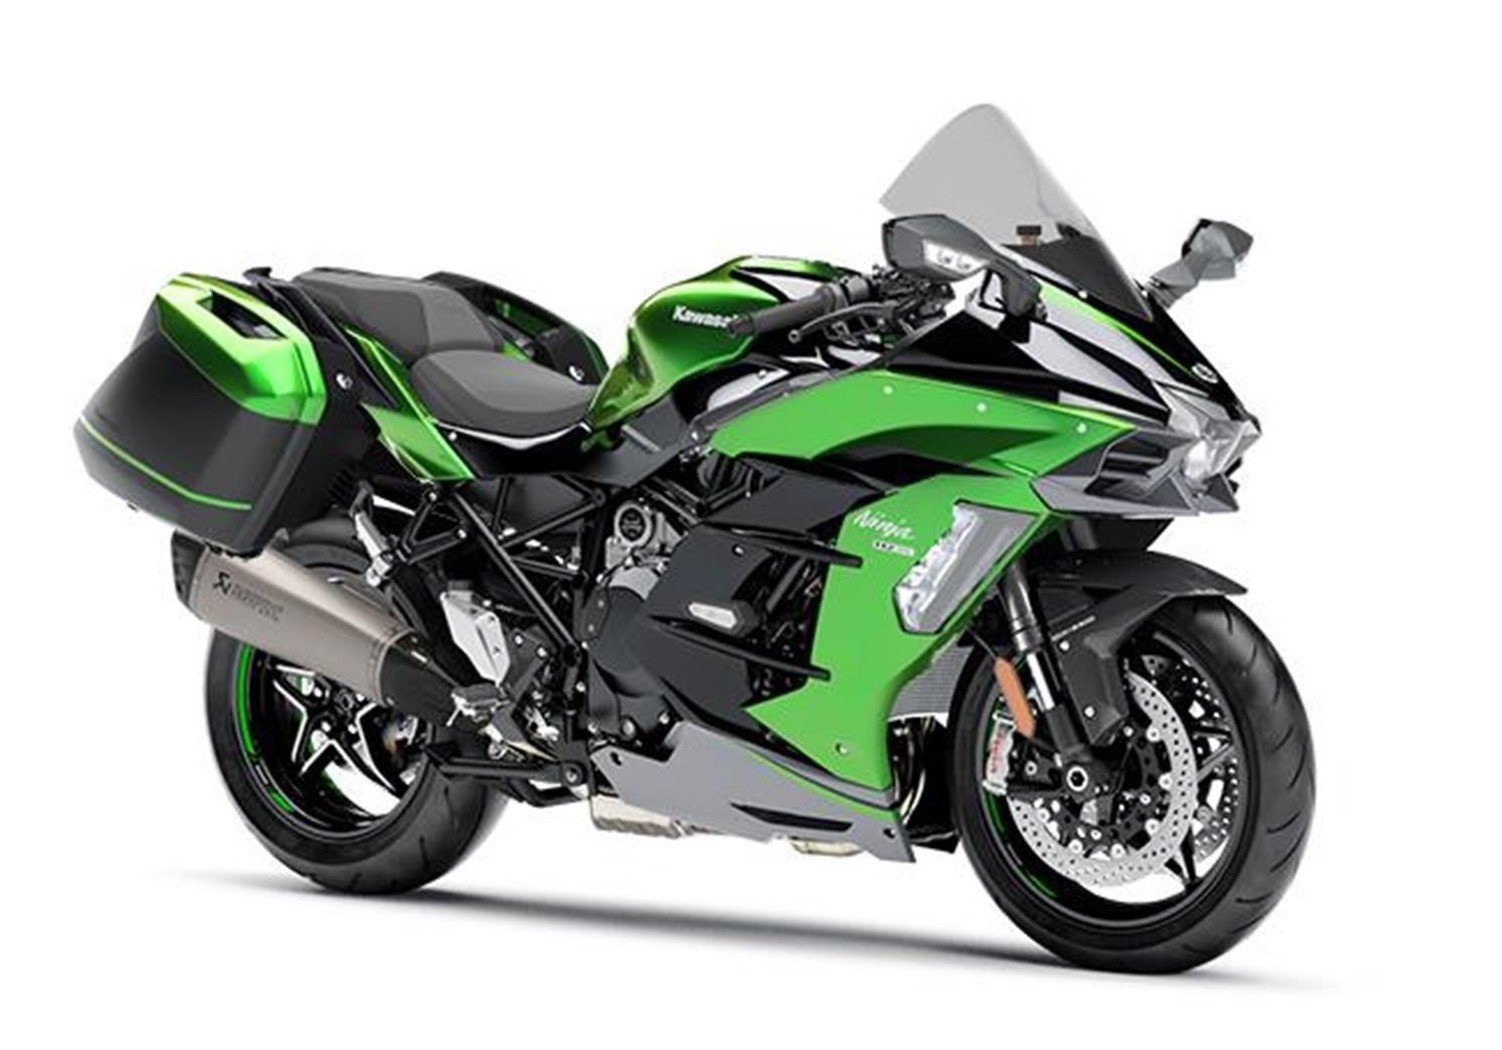 New 2020 Kawasaki Ninja H2 SX SE + Perf Tourer**£1,500 PAID* For Sale (picture 1 of 6)